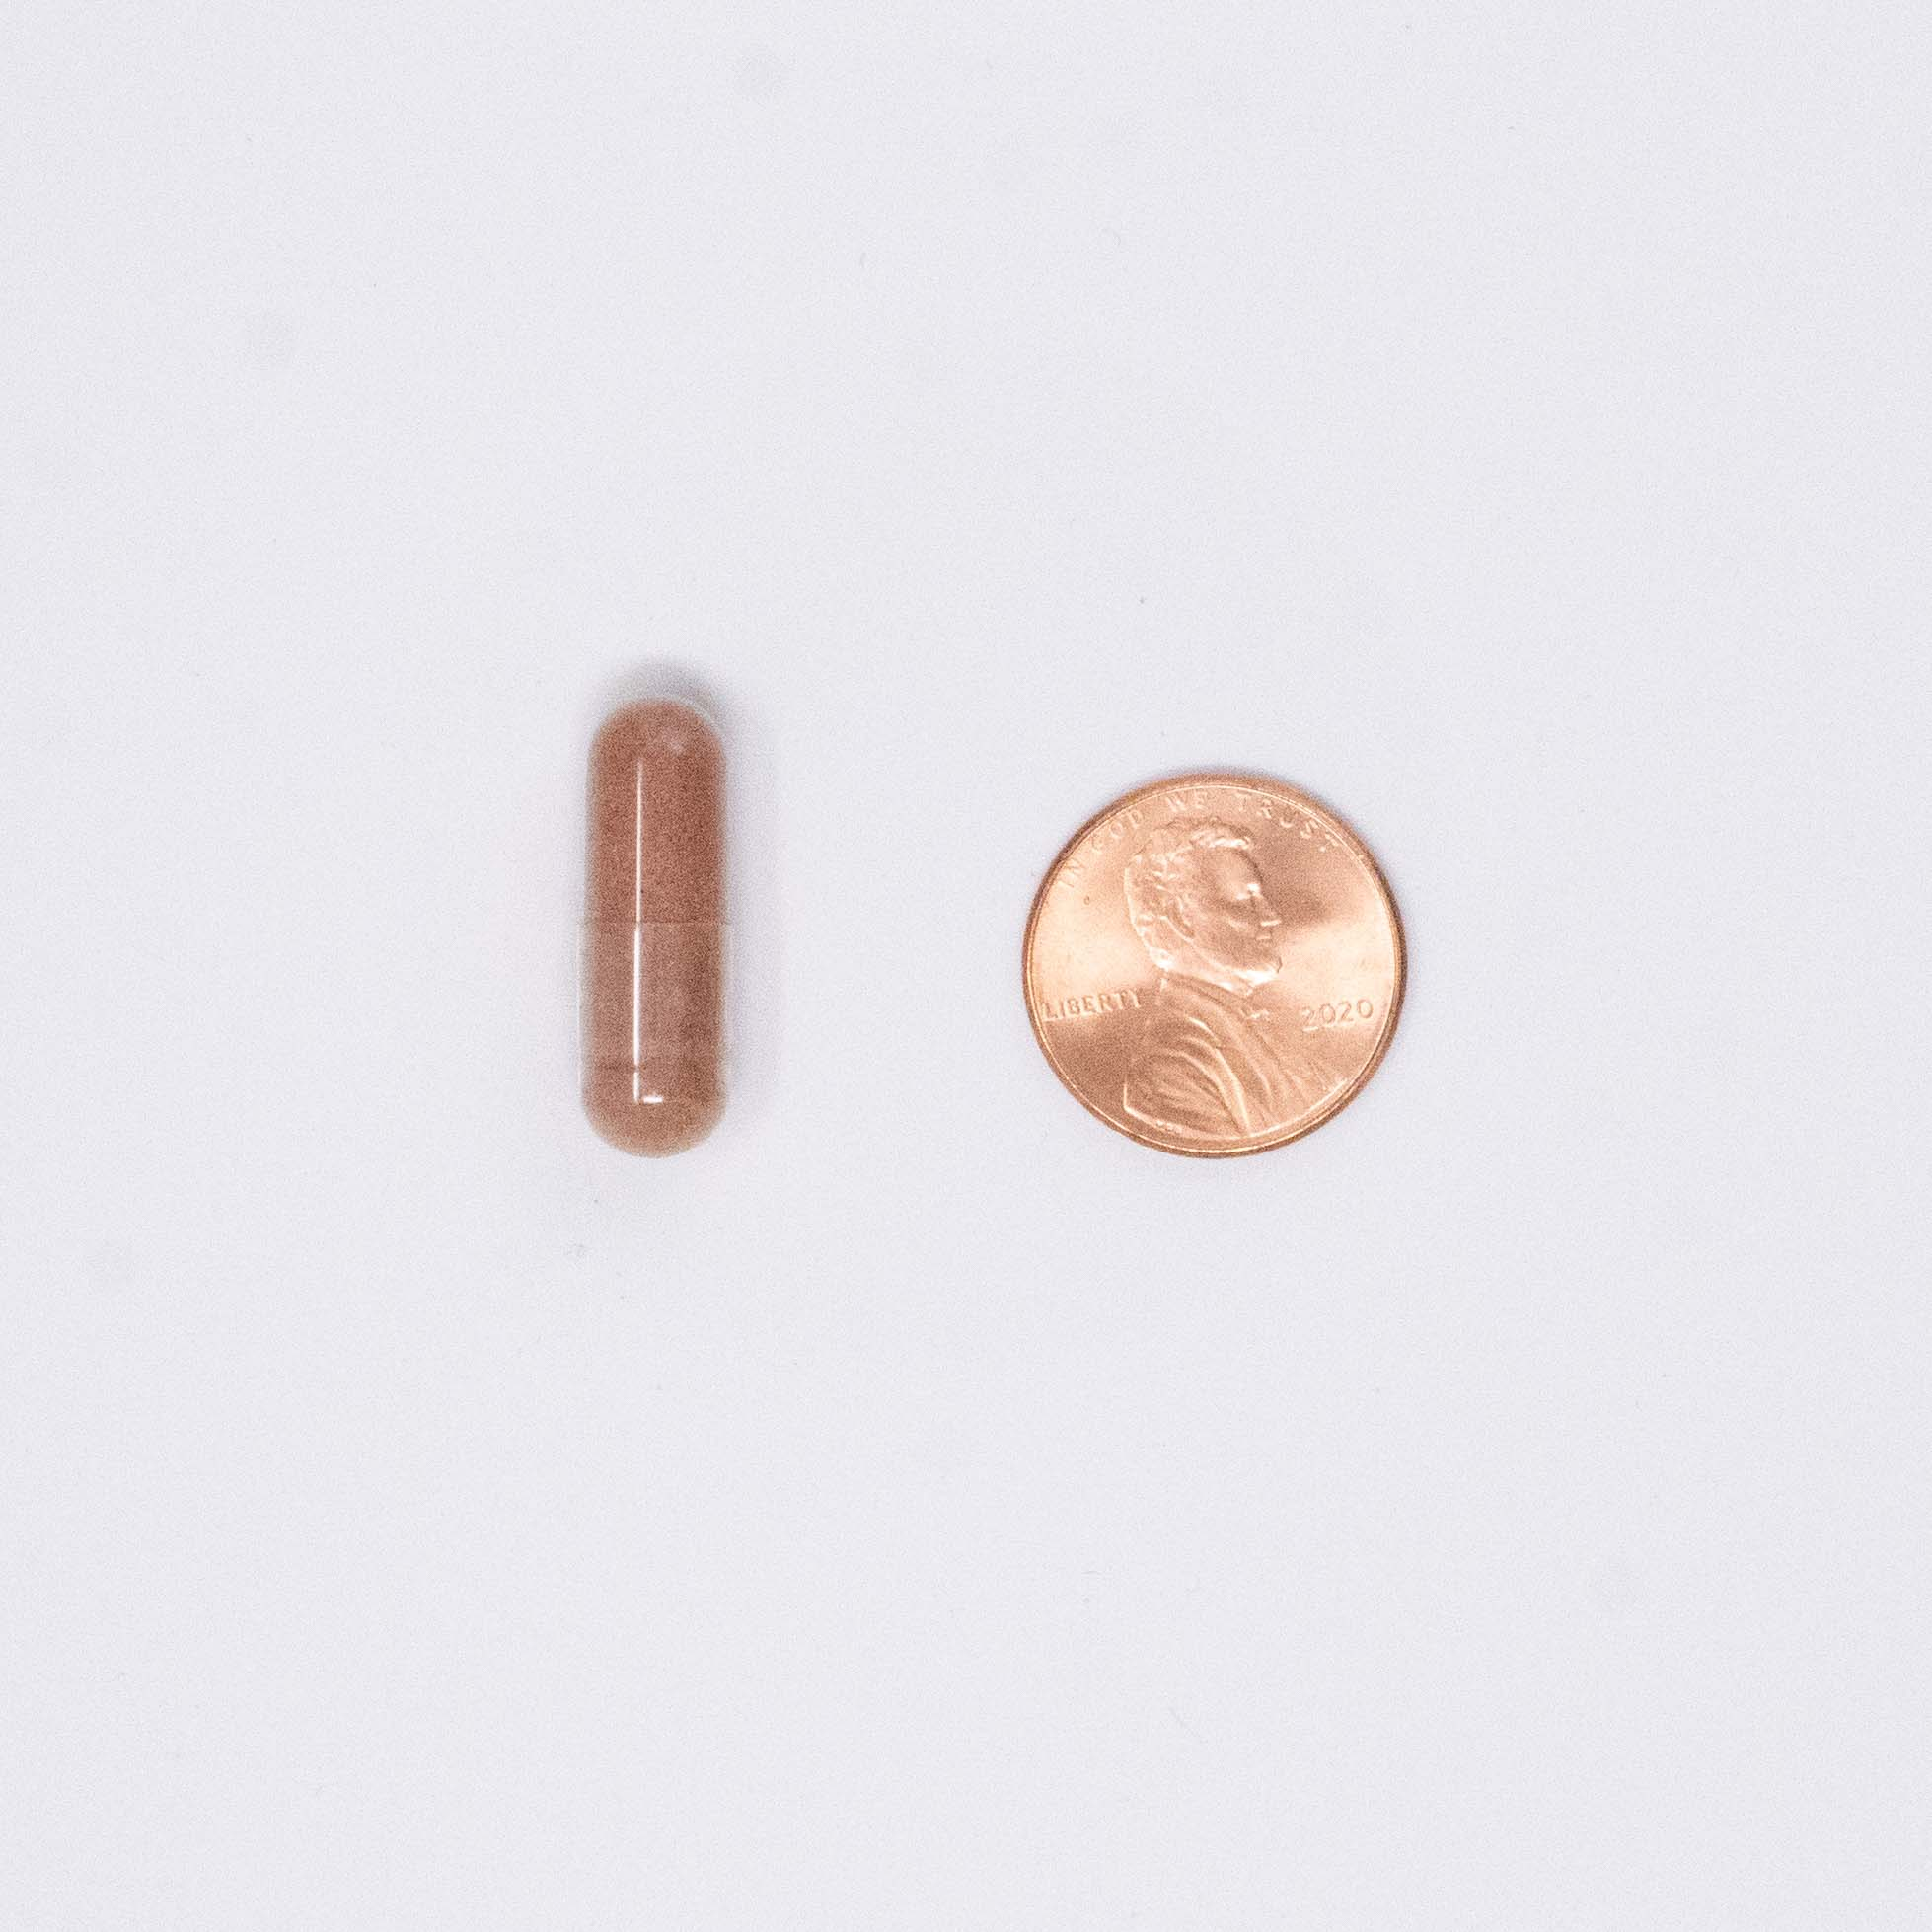 cranberry vitamin next to a penny